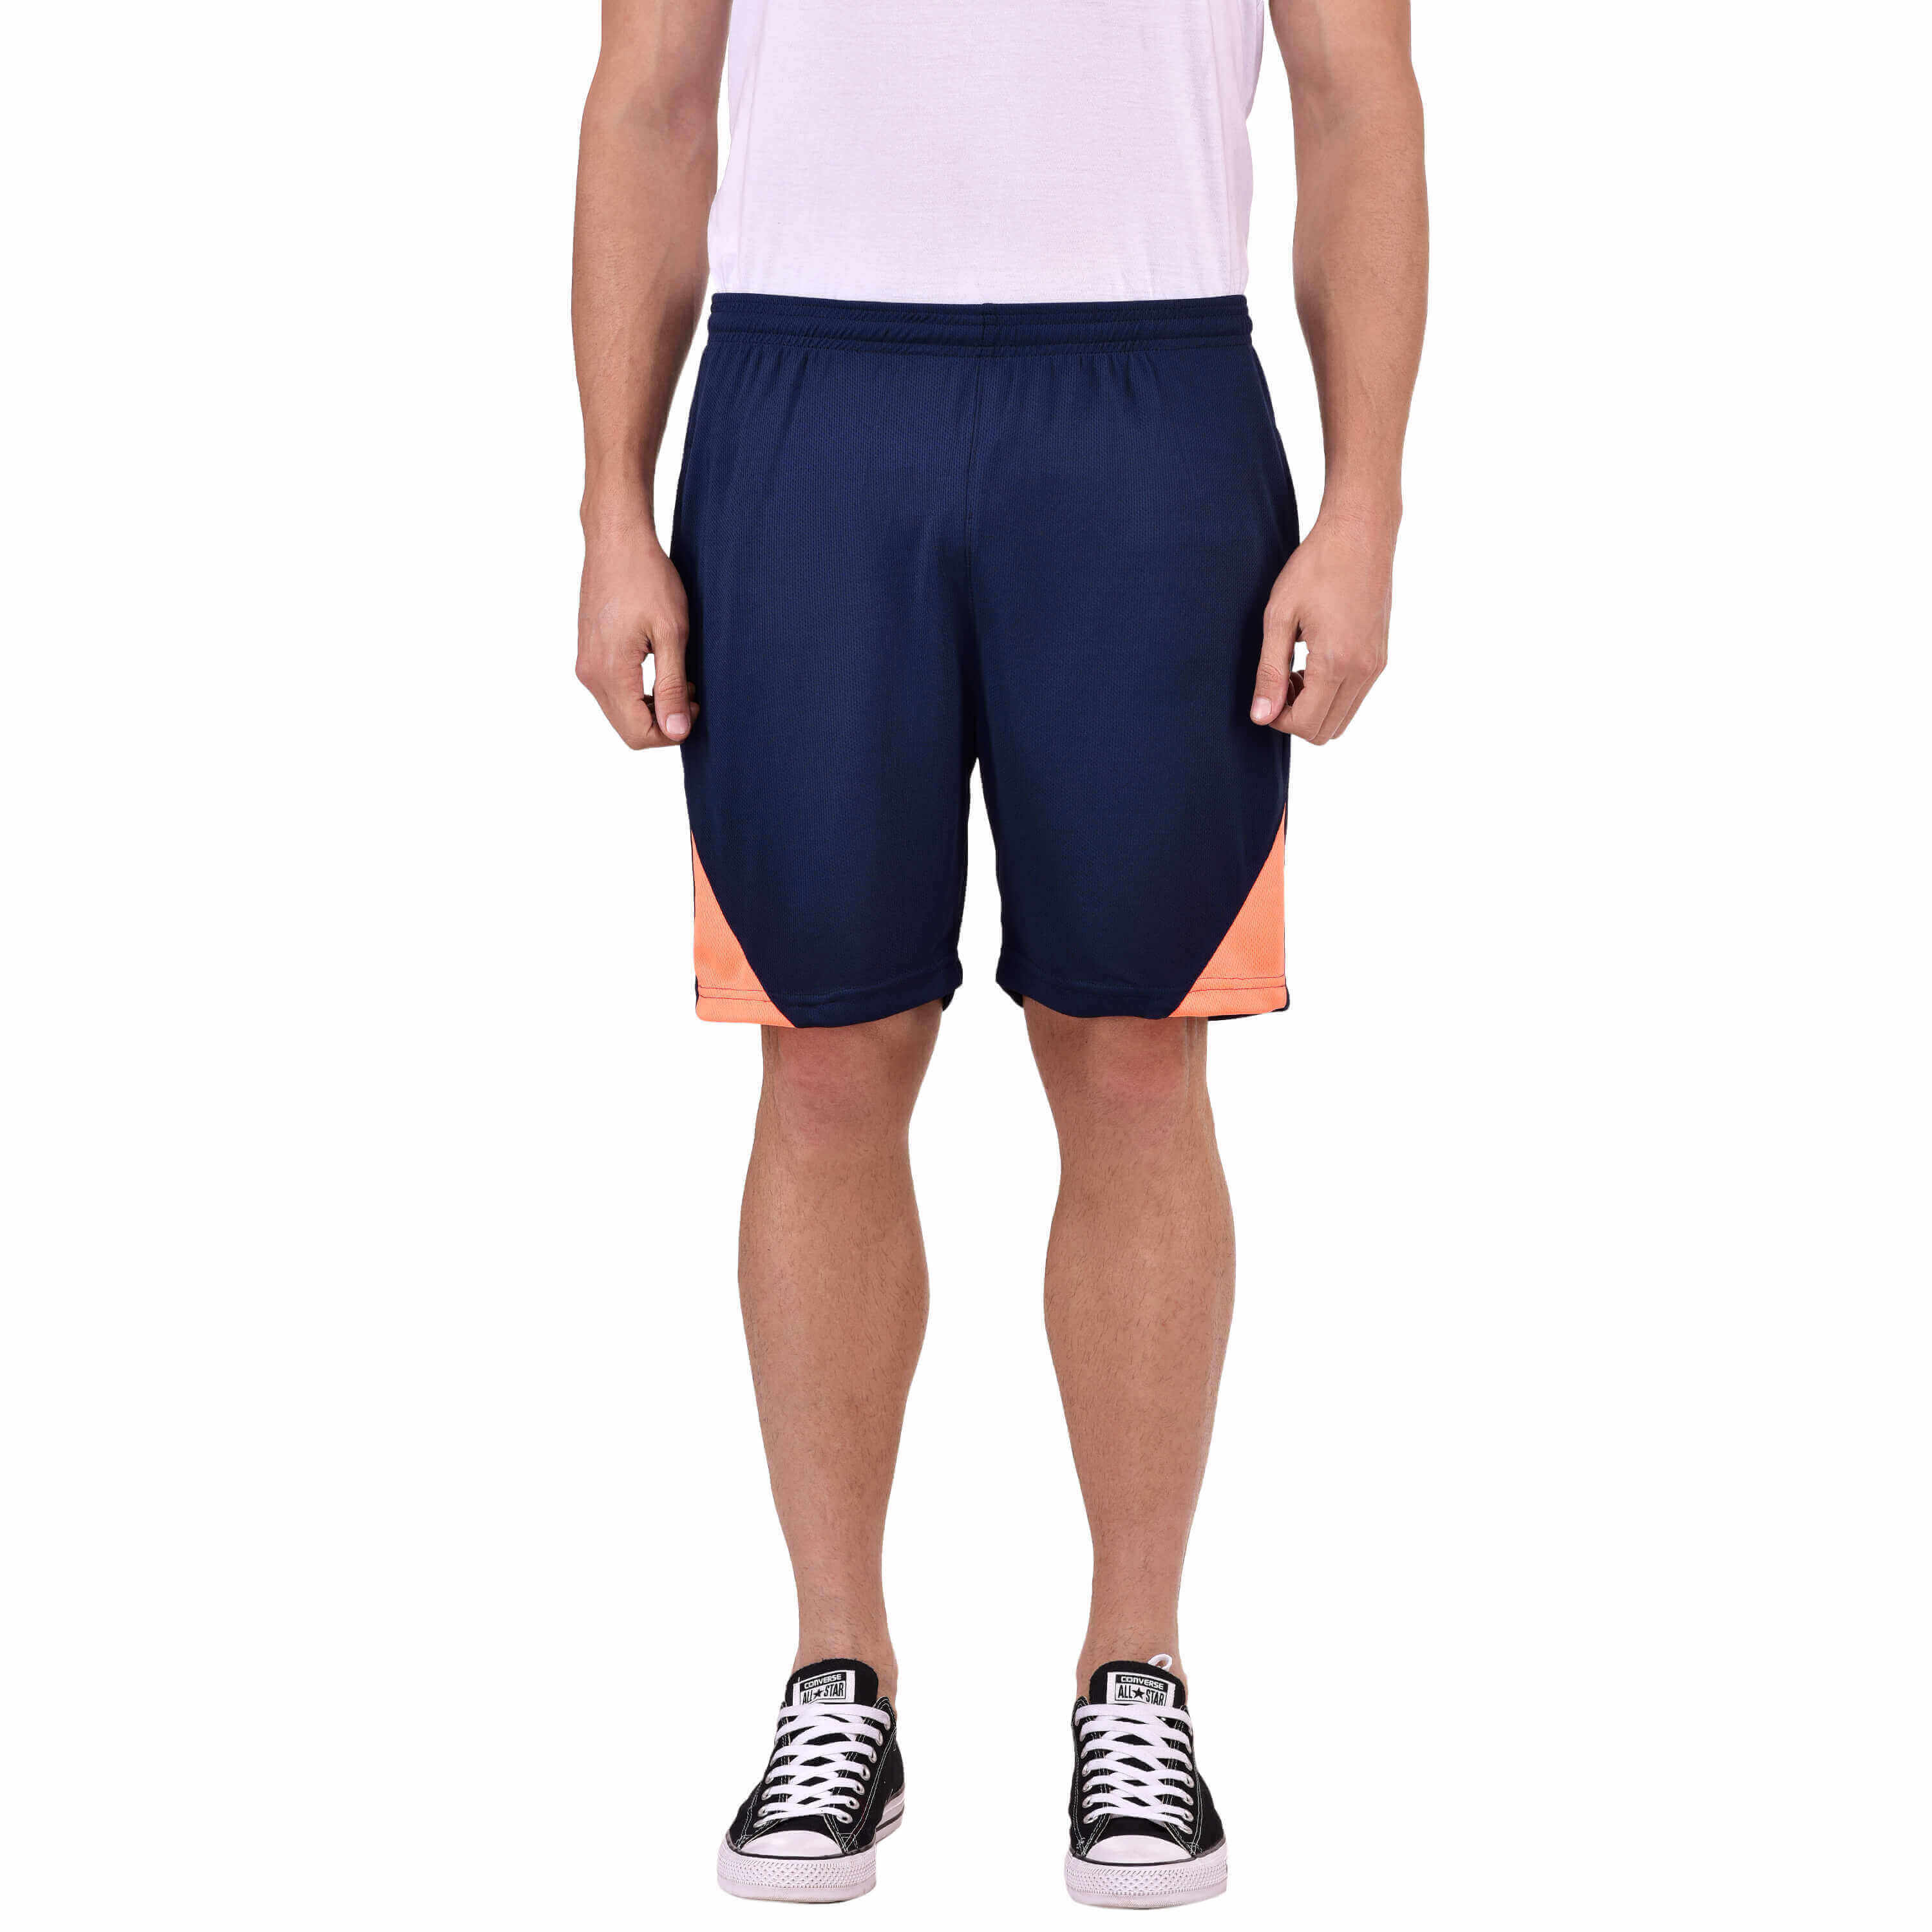 Football Shorts Manufacturers in Nanded